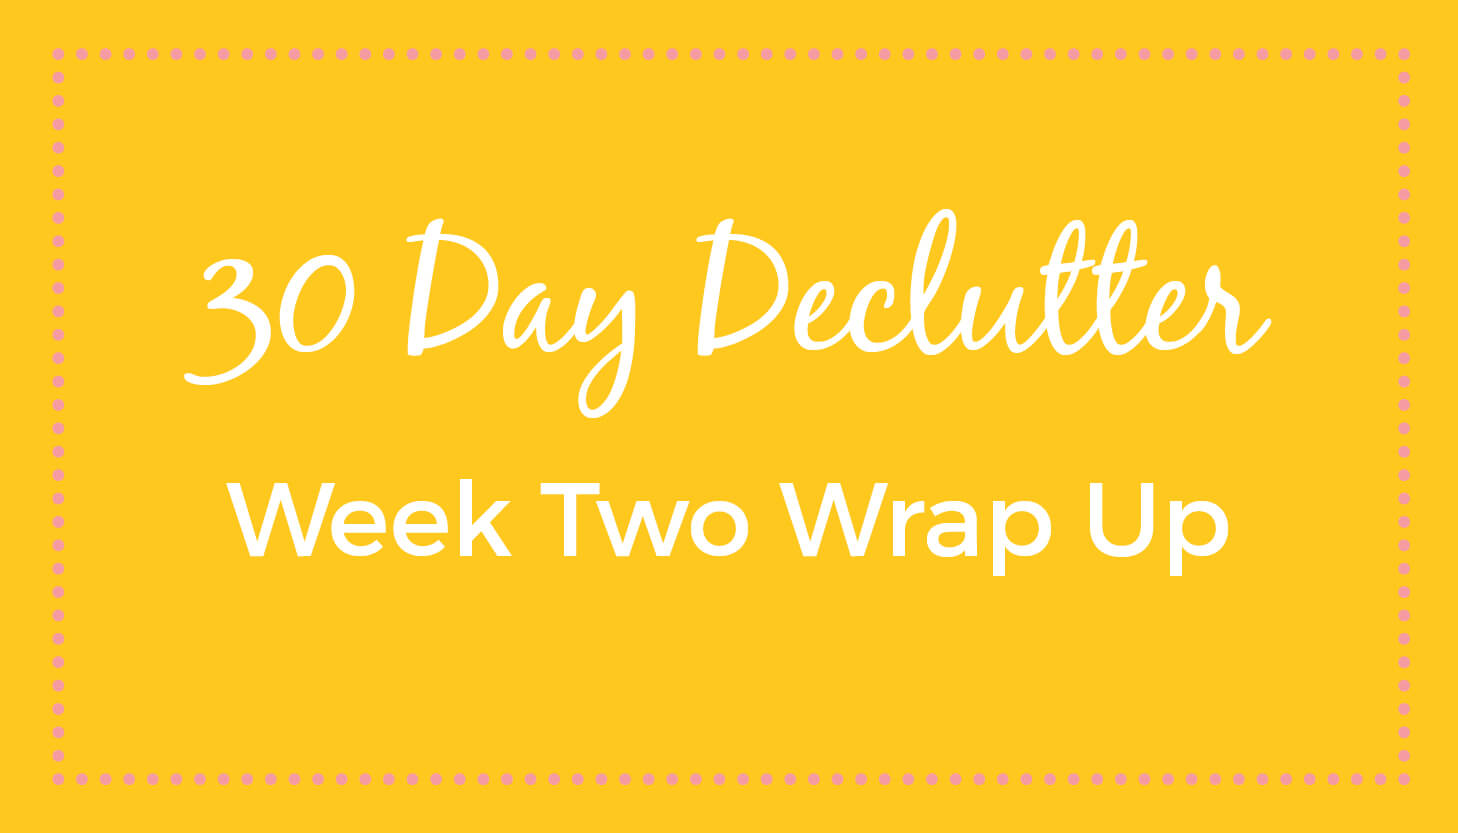 30 Day Declutter: Week 2 Wrap Up